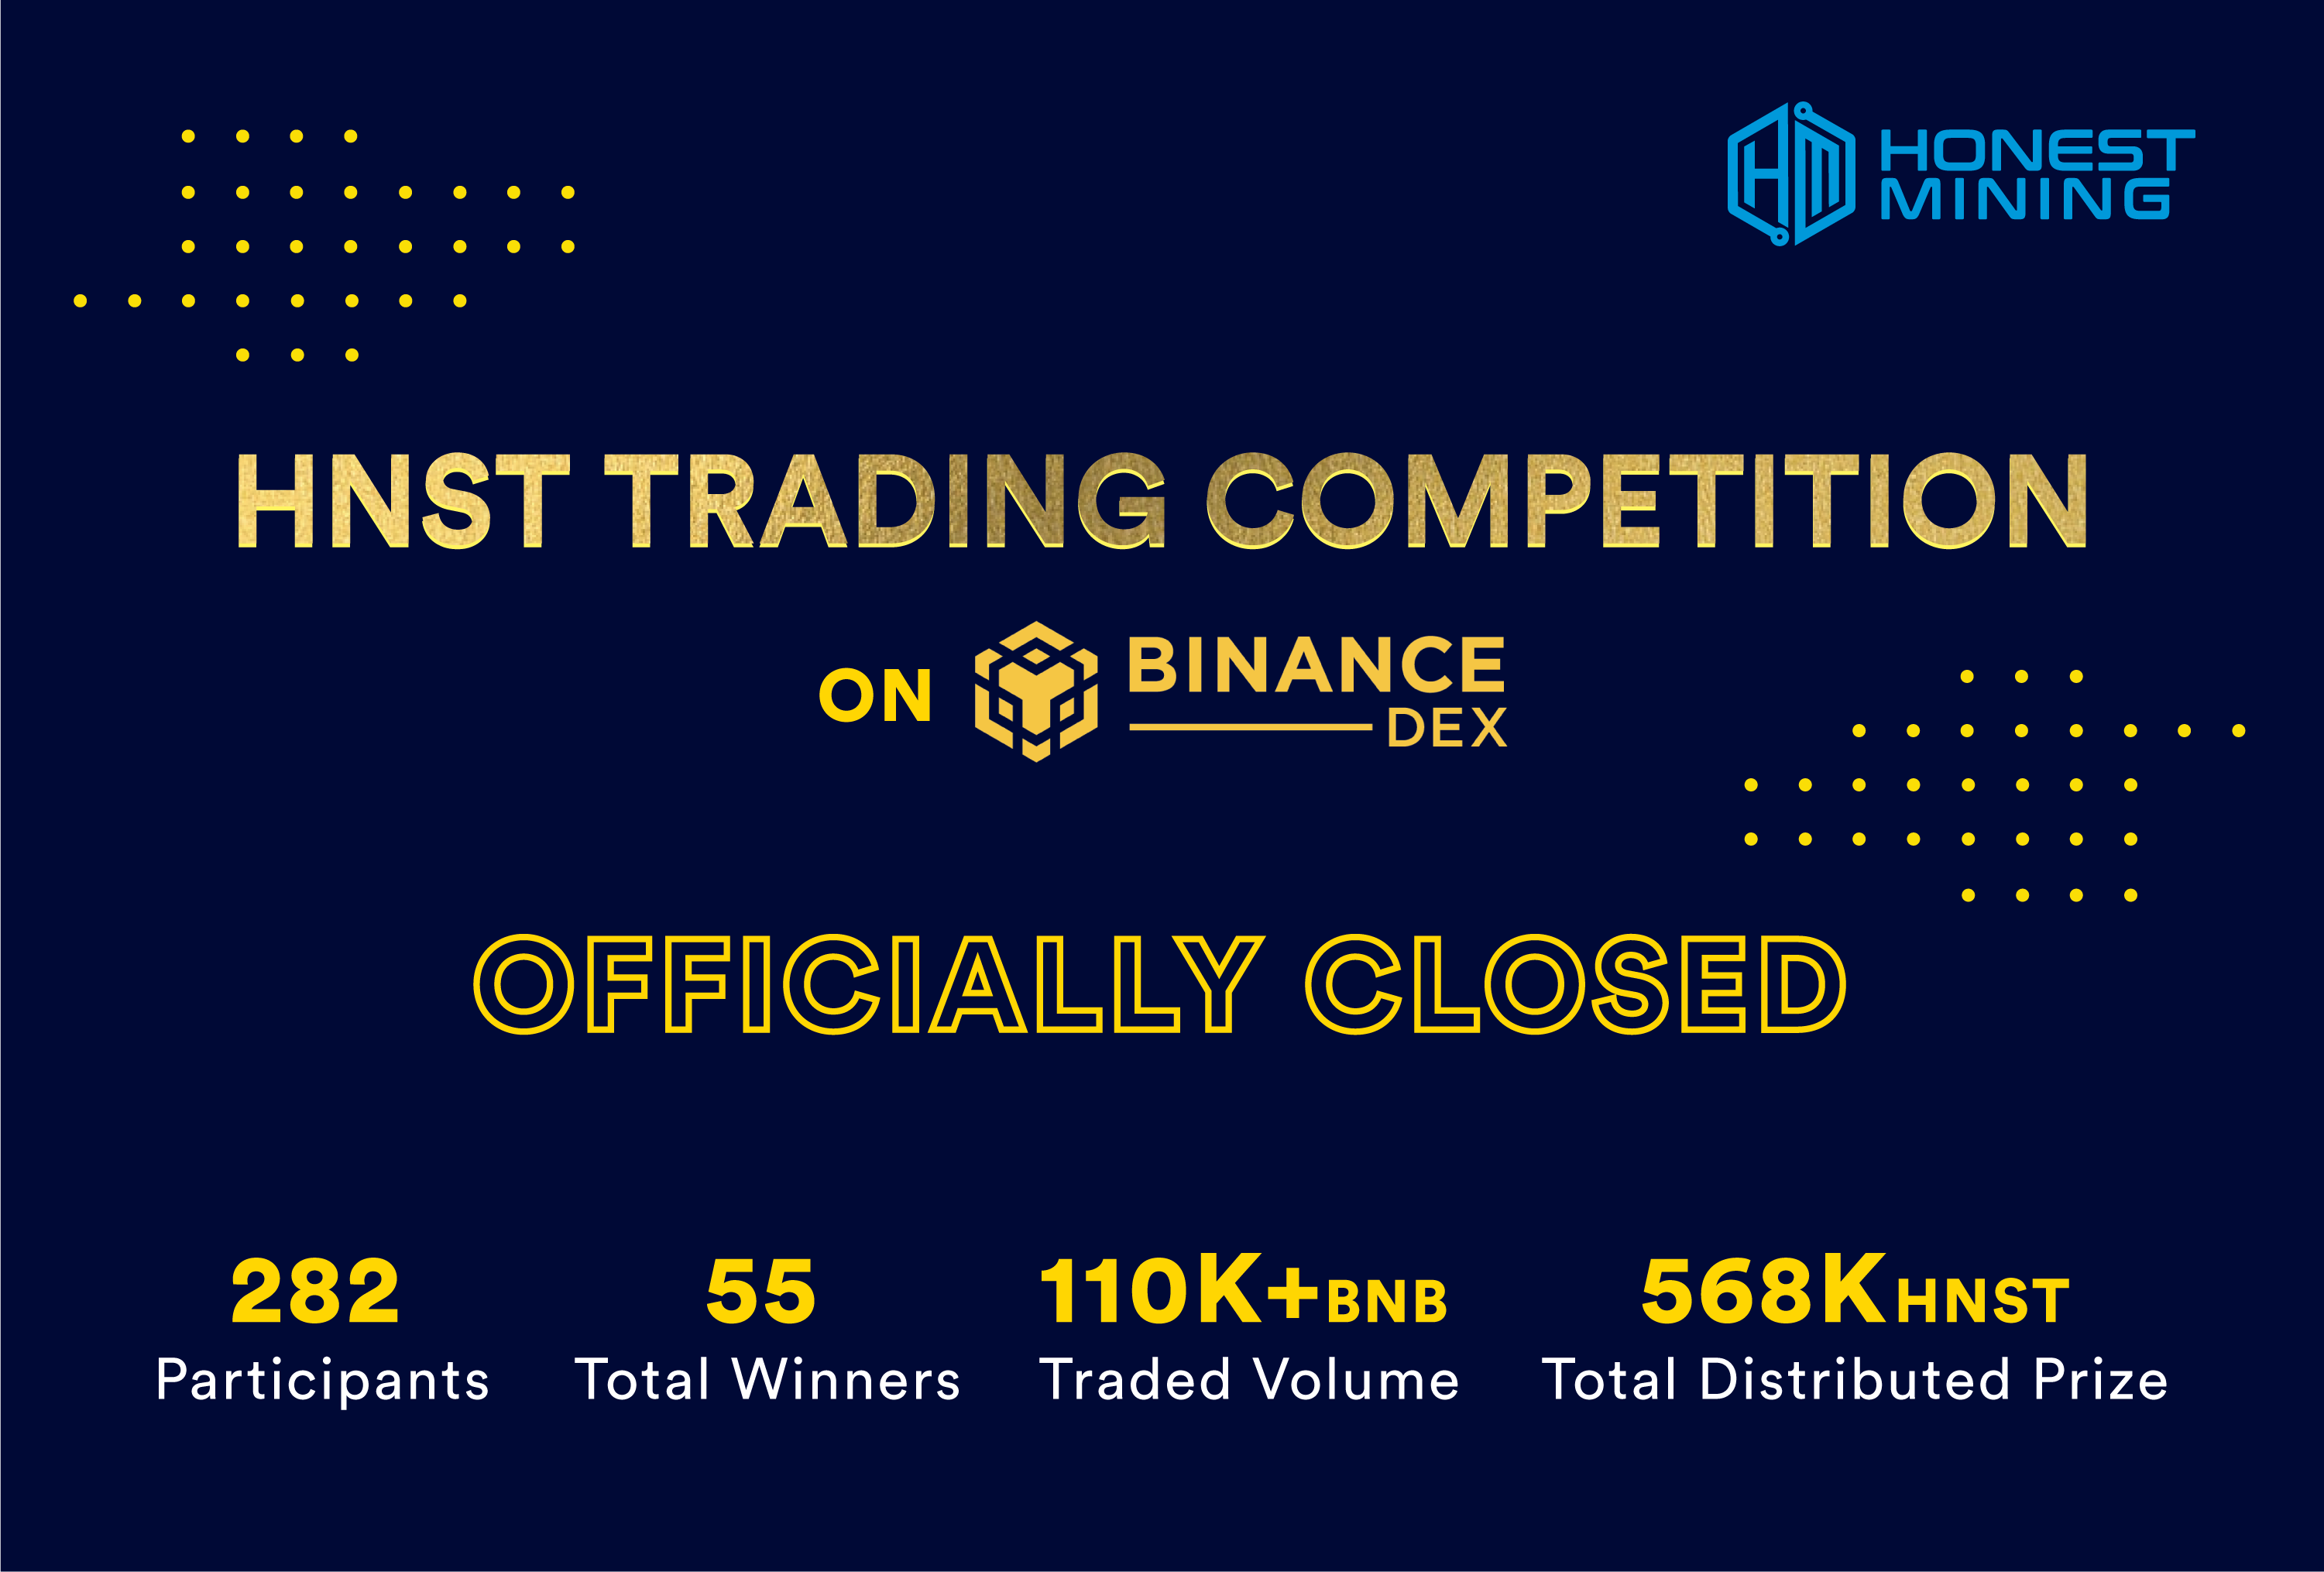 HNST Trading Competition Result Announcement